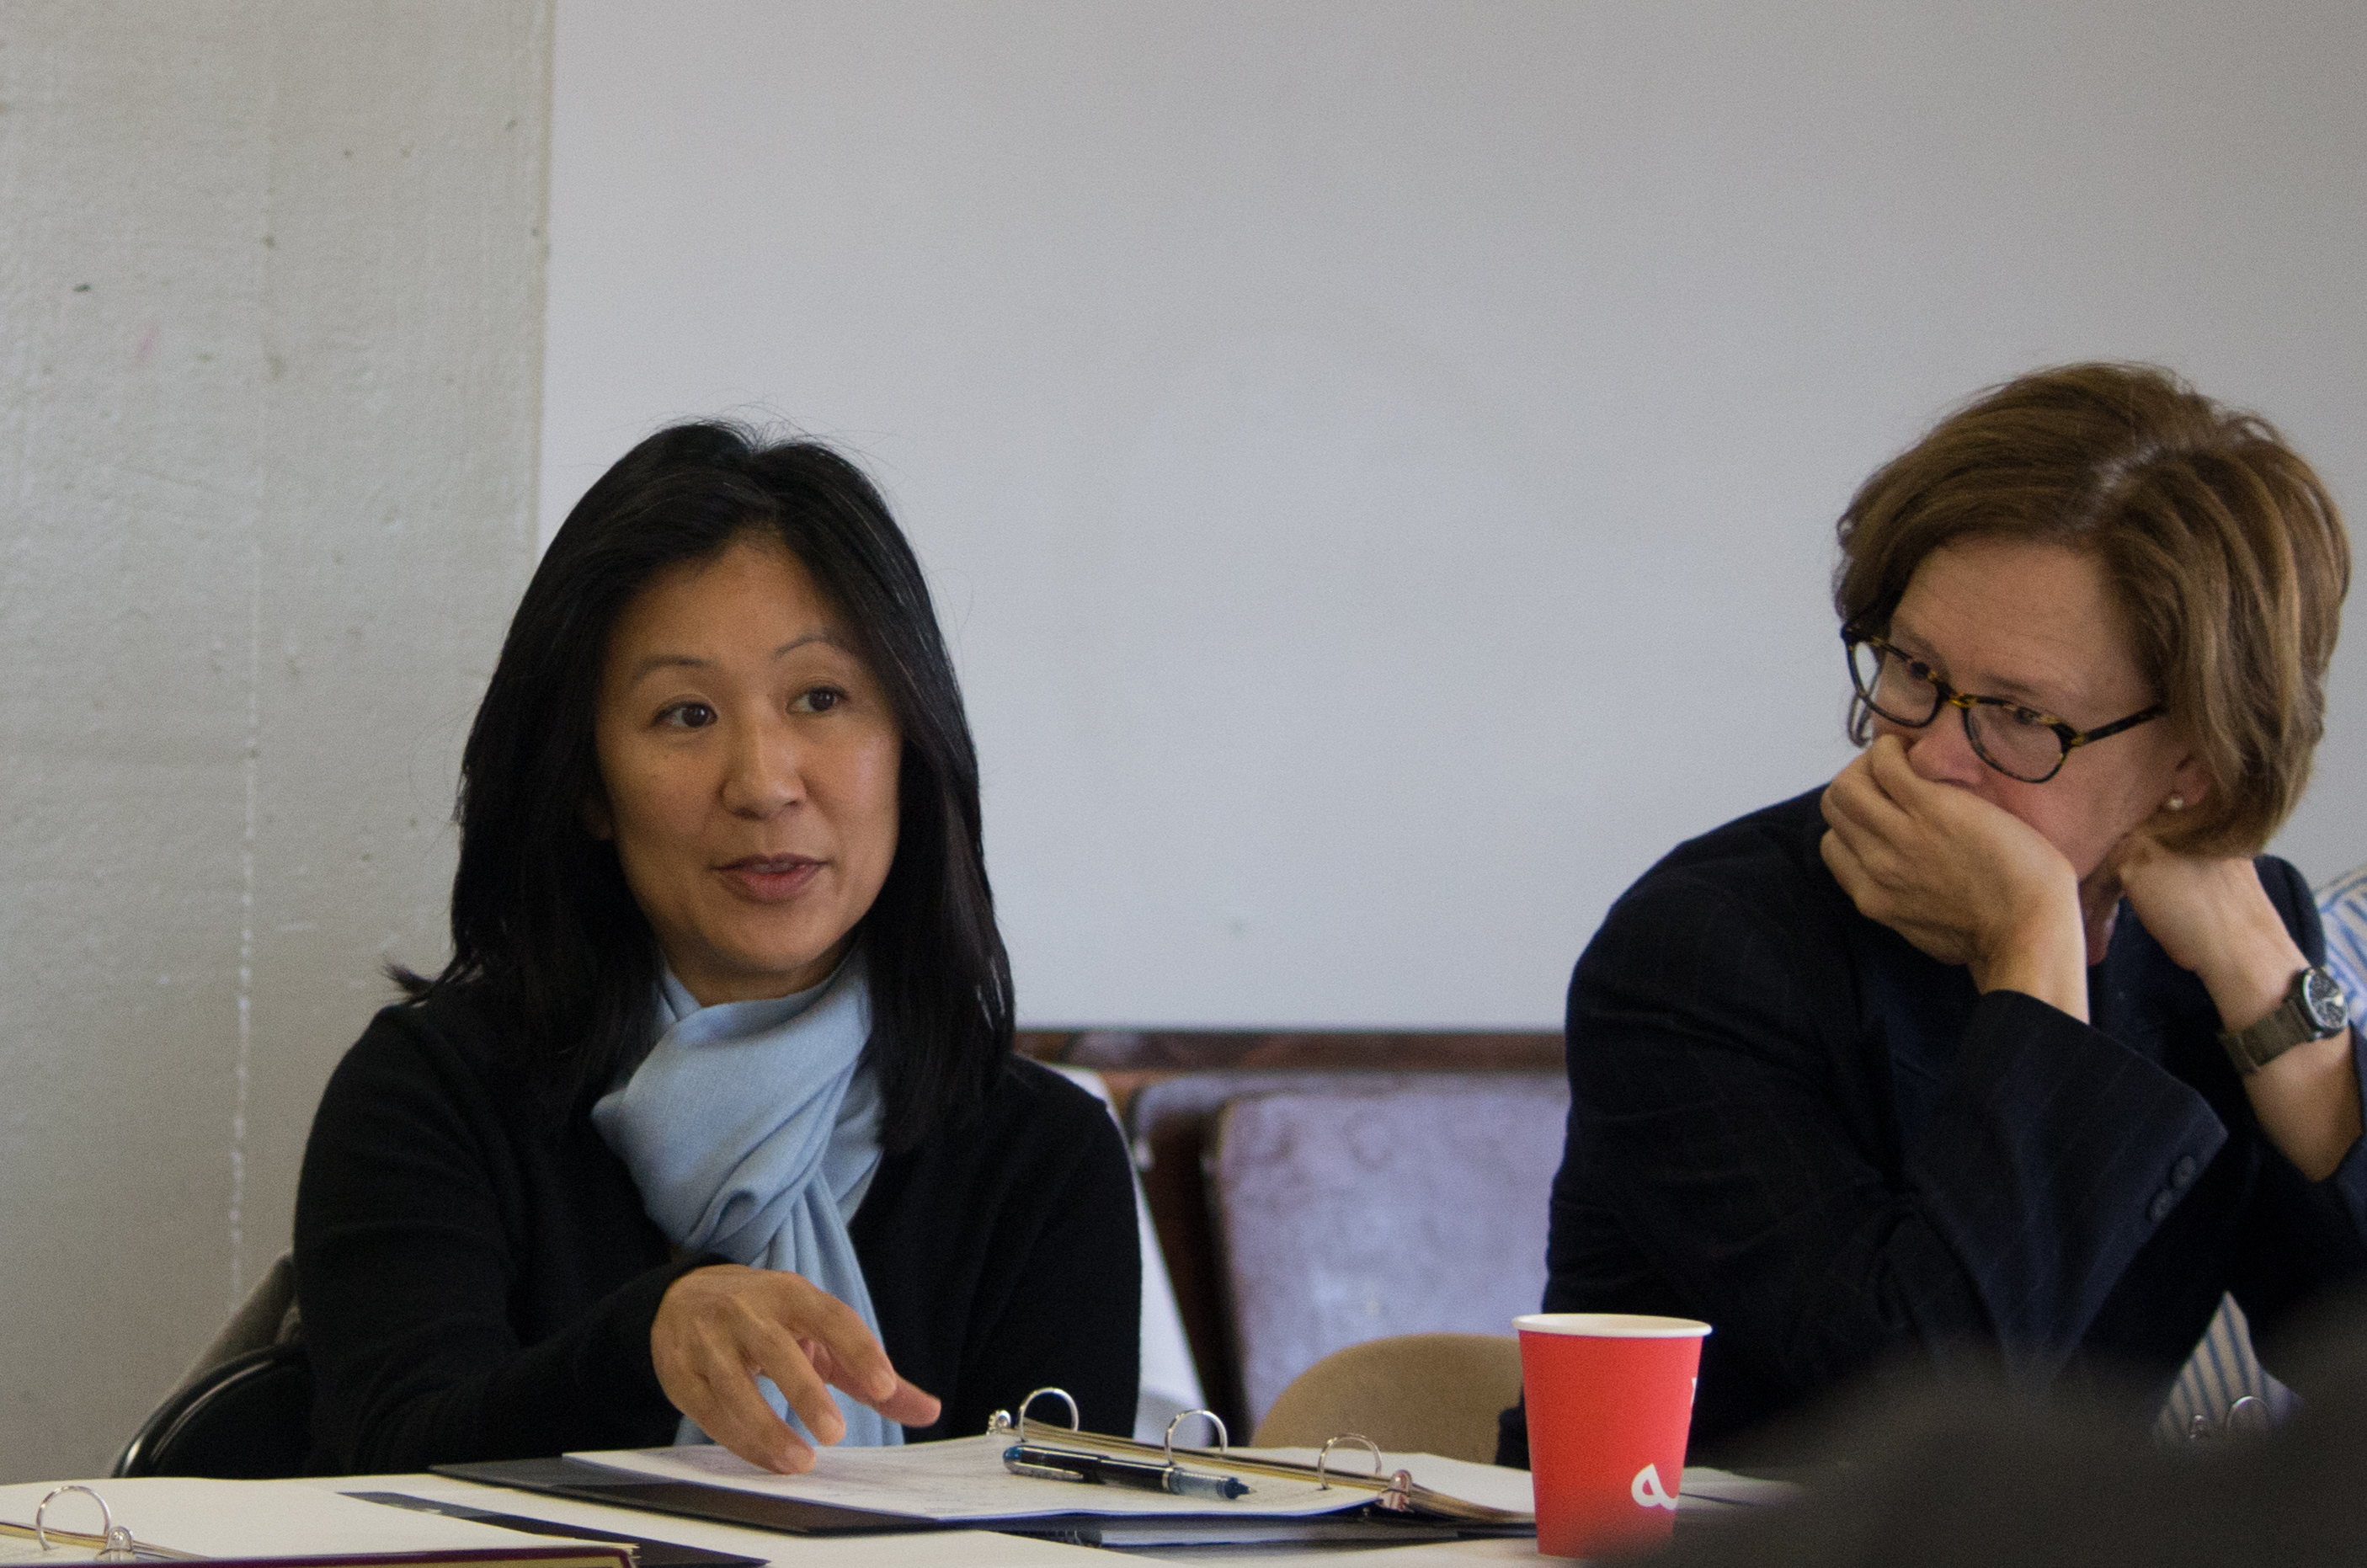 City College Trustee Ivy Lee, left, engages her colleagues in discussion at a board retreat as Trustee Thea Selby, right, listens in on Aug. 10 at the college's Fort Mason Center. (David Mamaril Horowitz / The Guardsman)